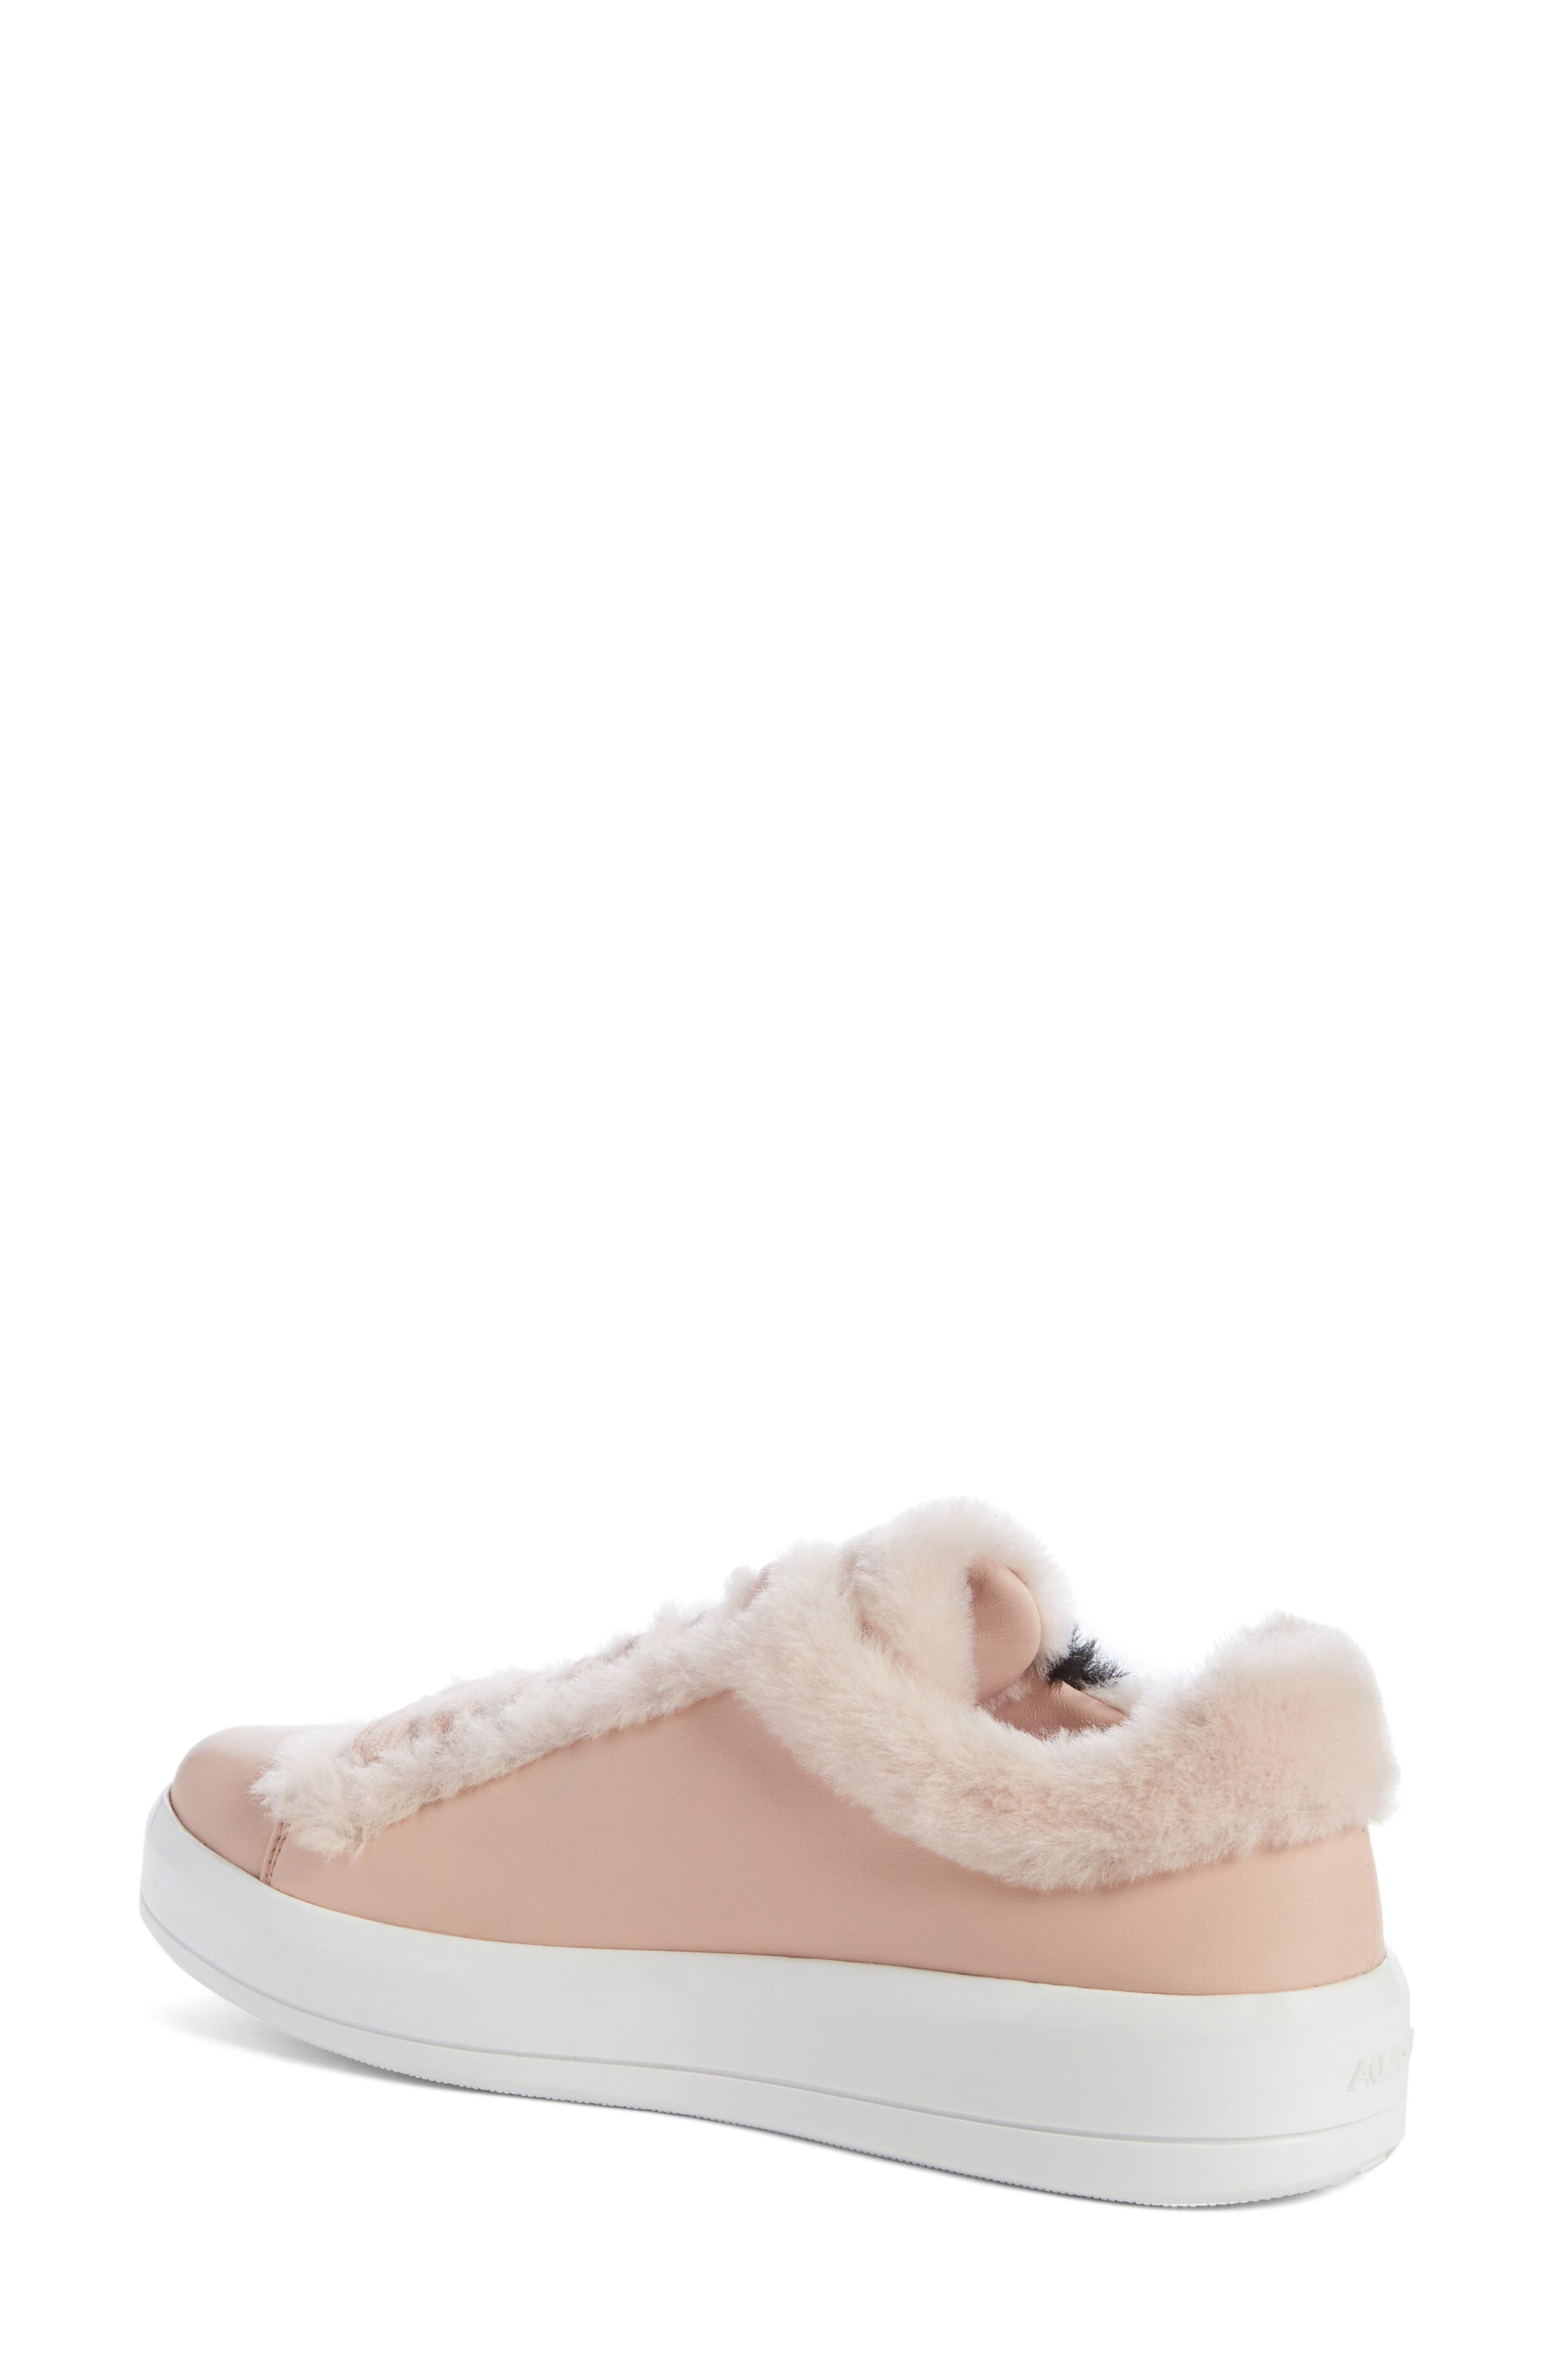 Genuine Shearling Trim Platform Sneaker,                             Alternate thumbnail 2, color,                             Pink Leather